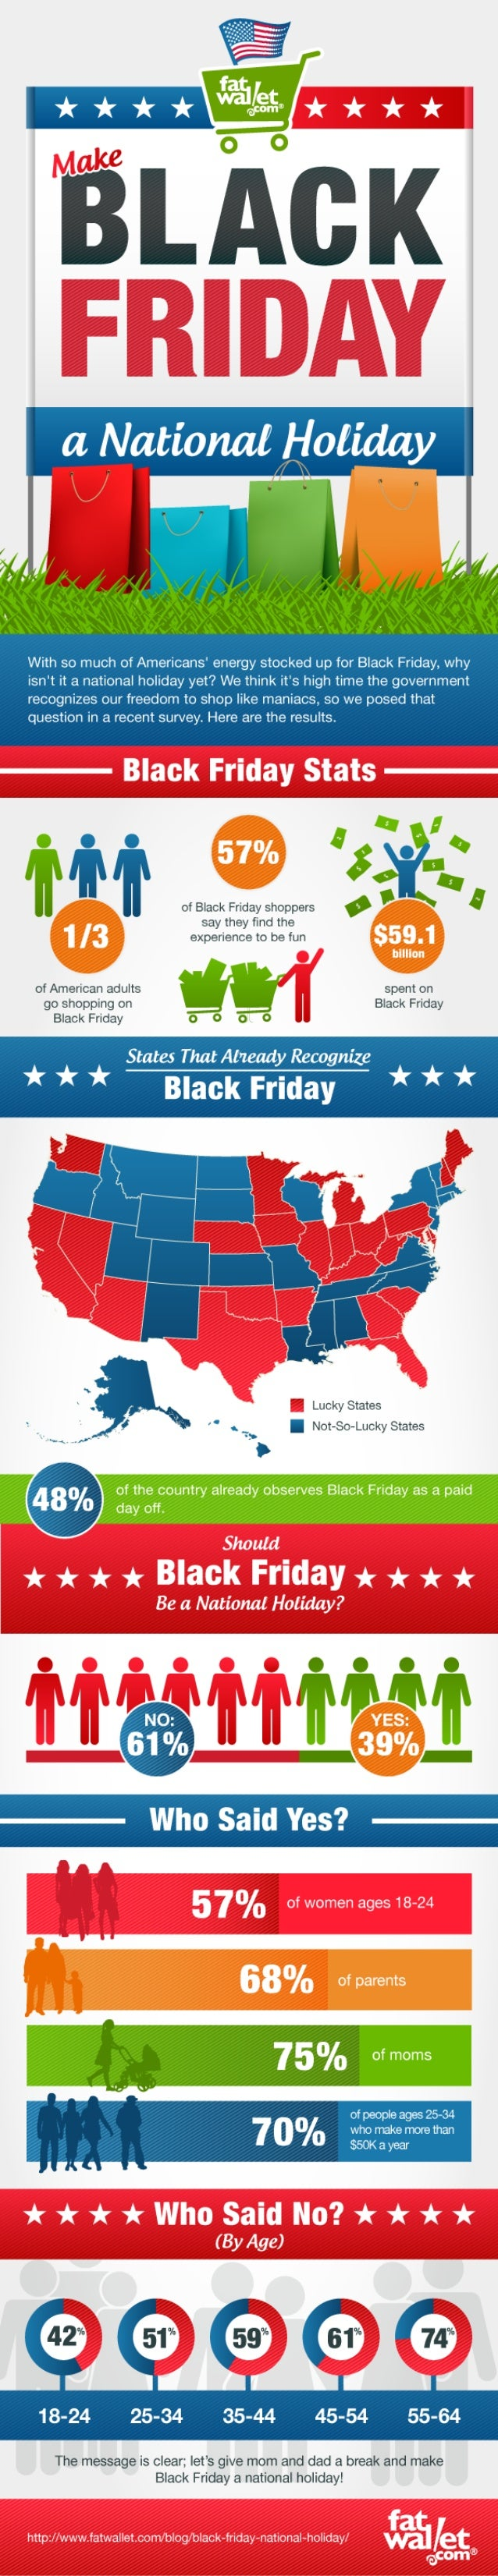 With so much of Americans' energy stocked up for Black Friday,  why isn't it a national holiday yet?  We think it's high t...